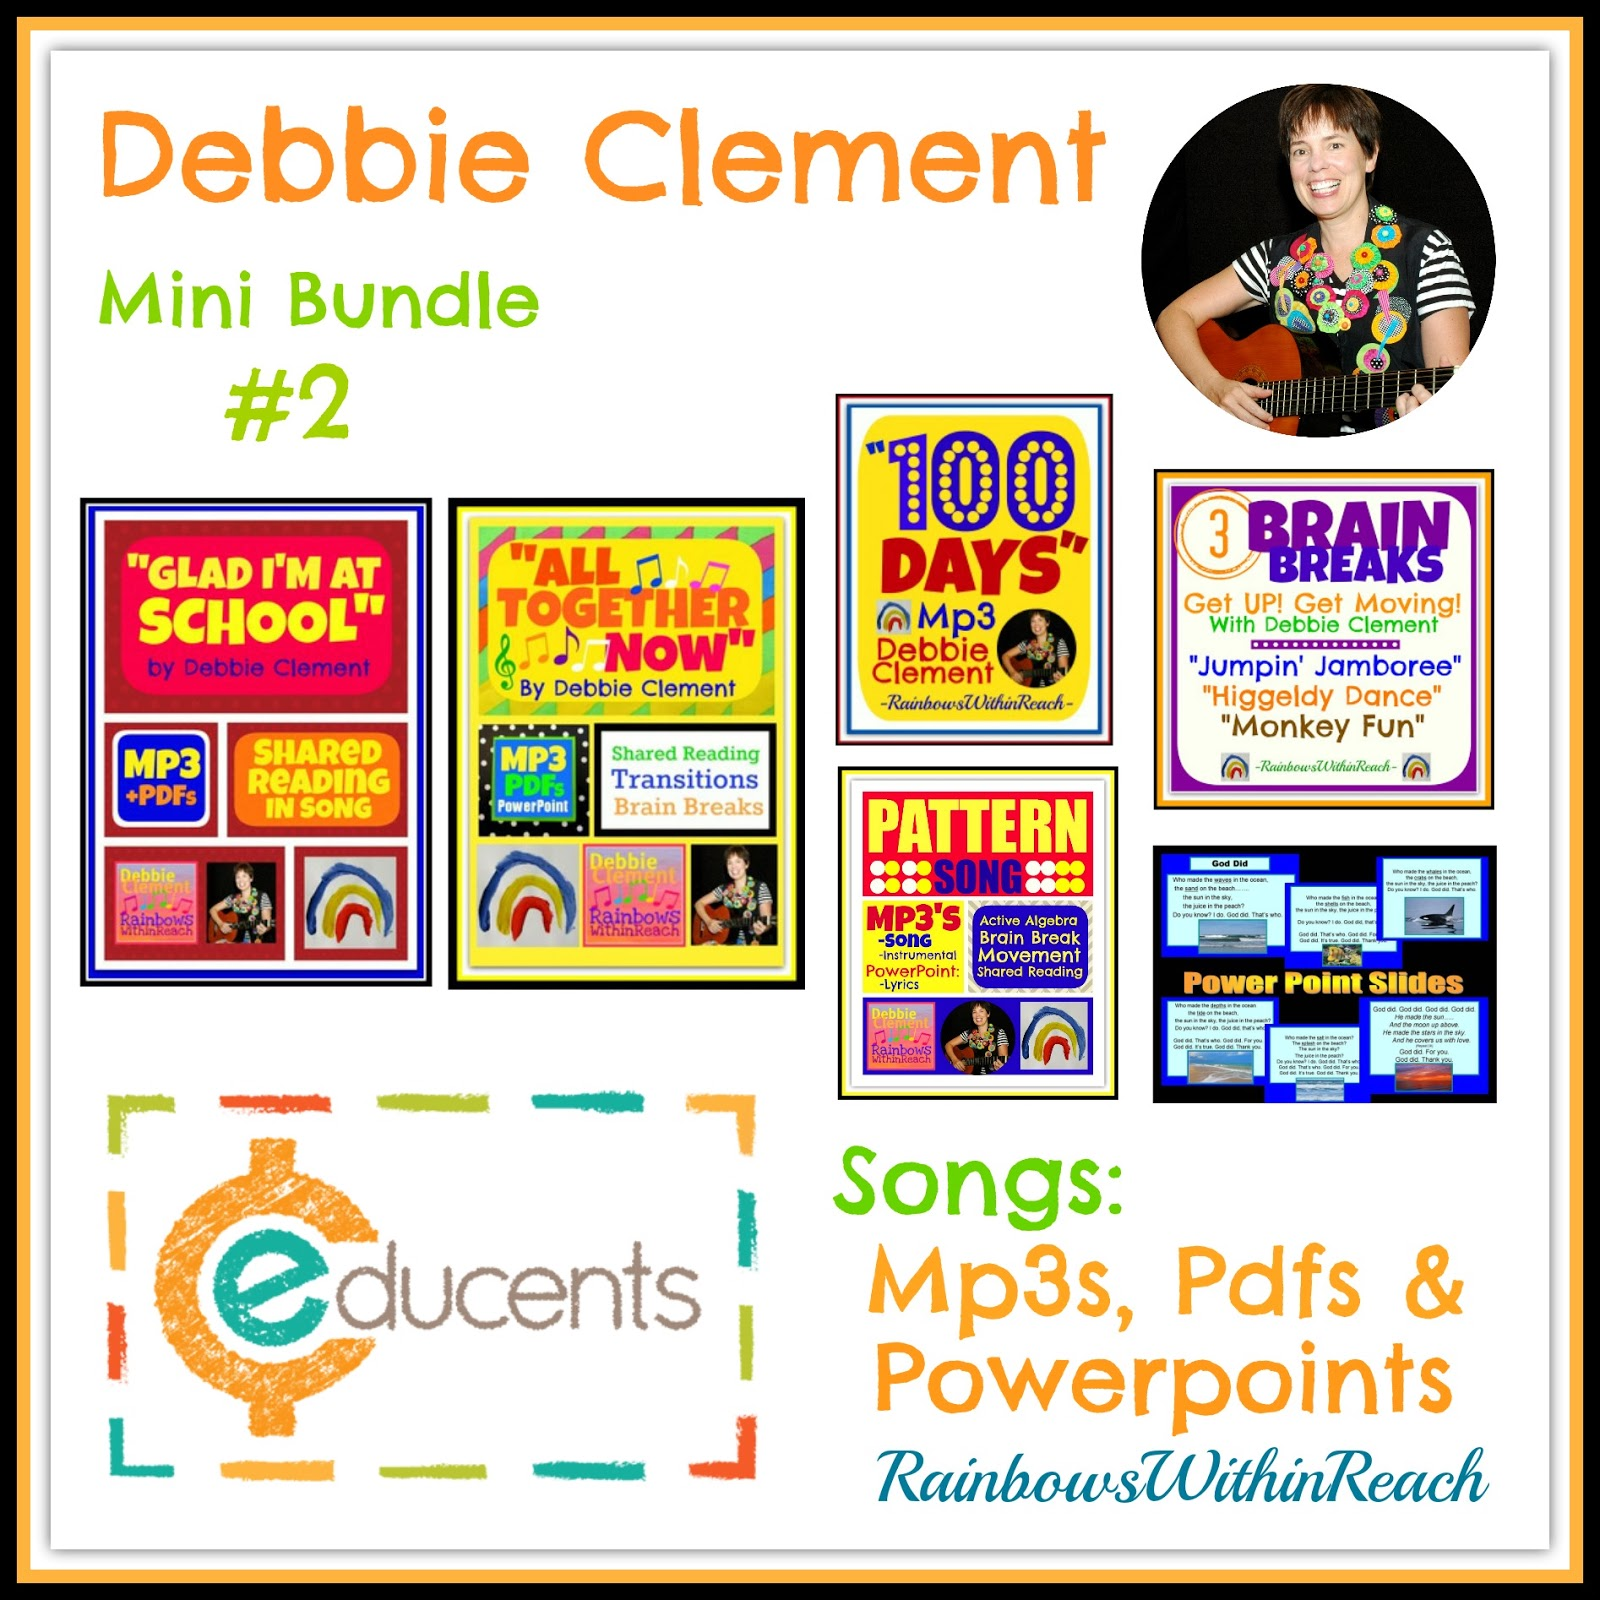 Debbie Clement's Songs in Digital Download with Deep Discount through Educents